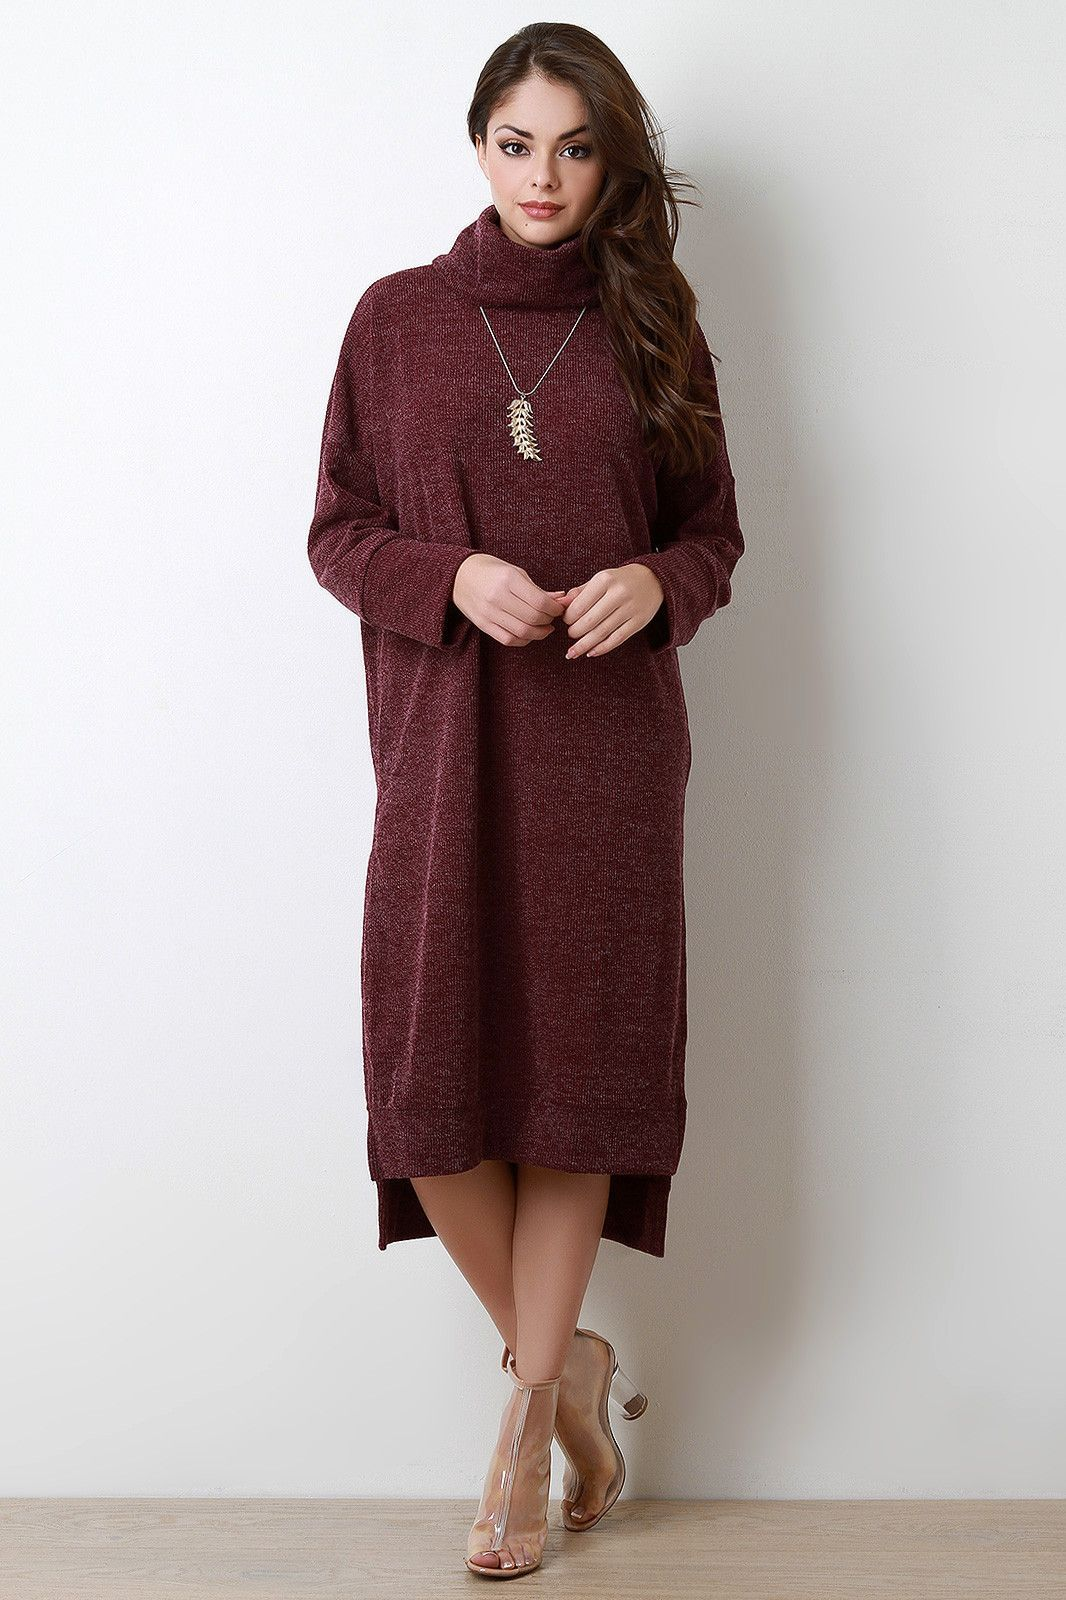 Cozy Cowl Neck Sweater Dress Cozy Cowl Neck Sweater Dress | Cowl ...